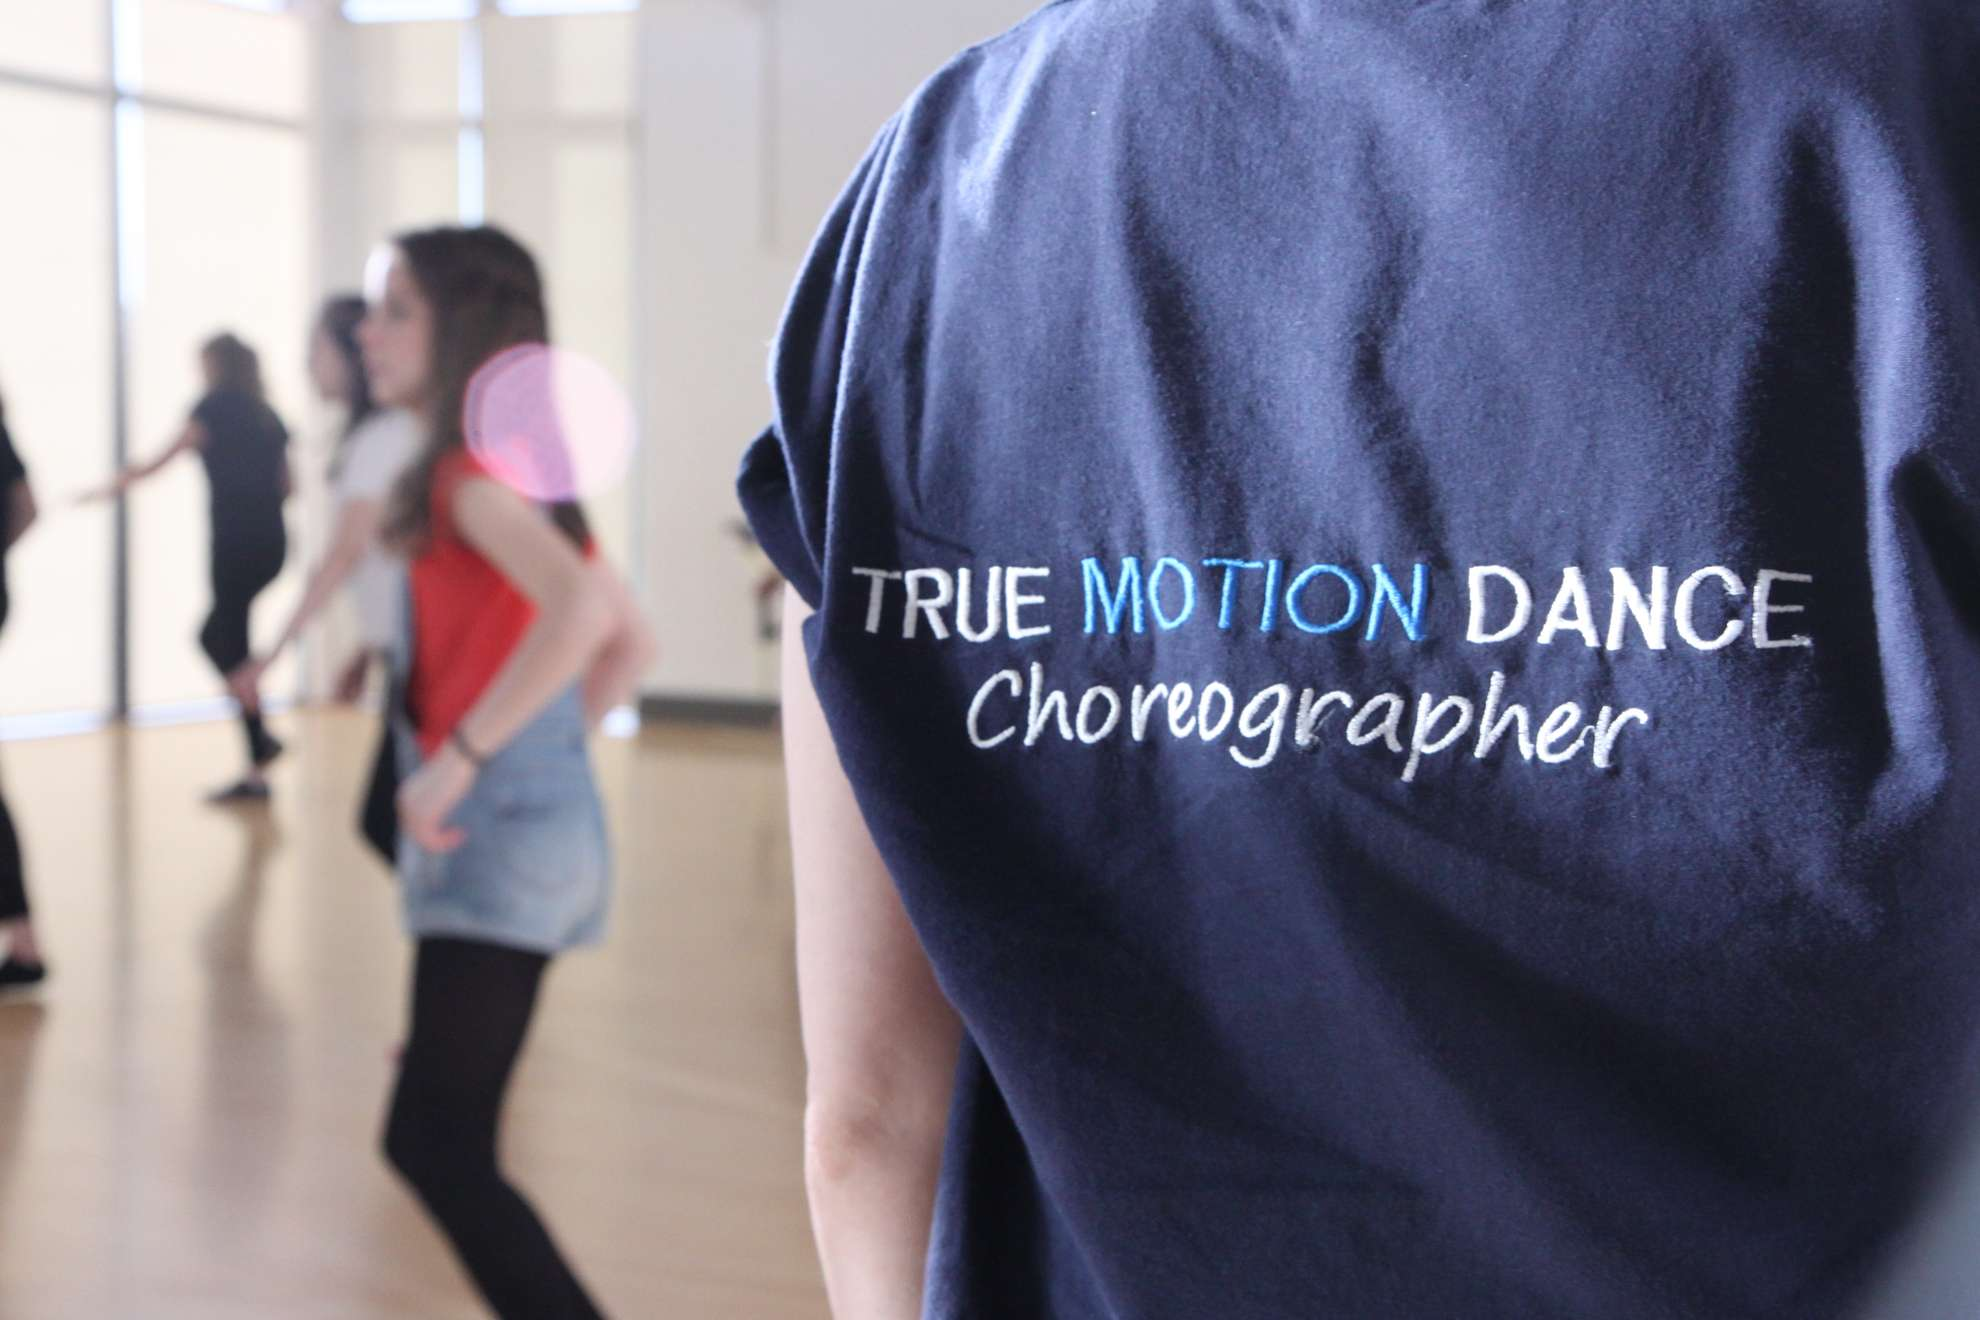 Choreographer in dance class